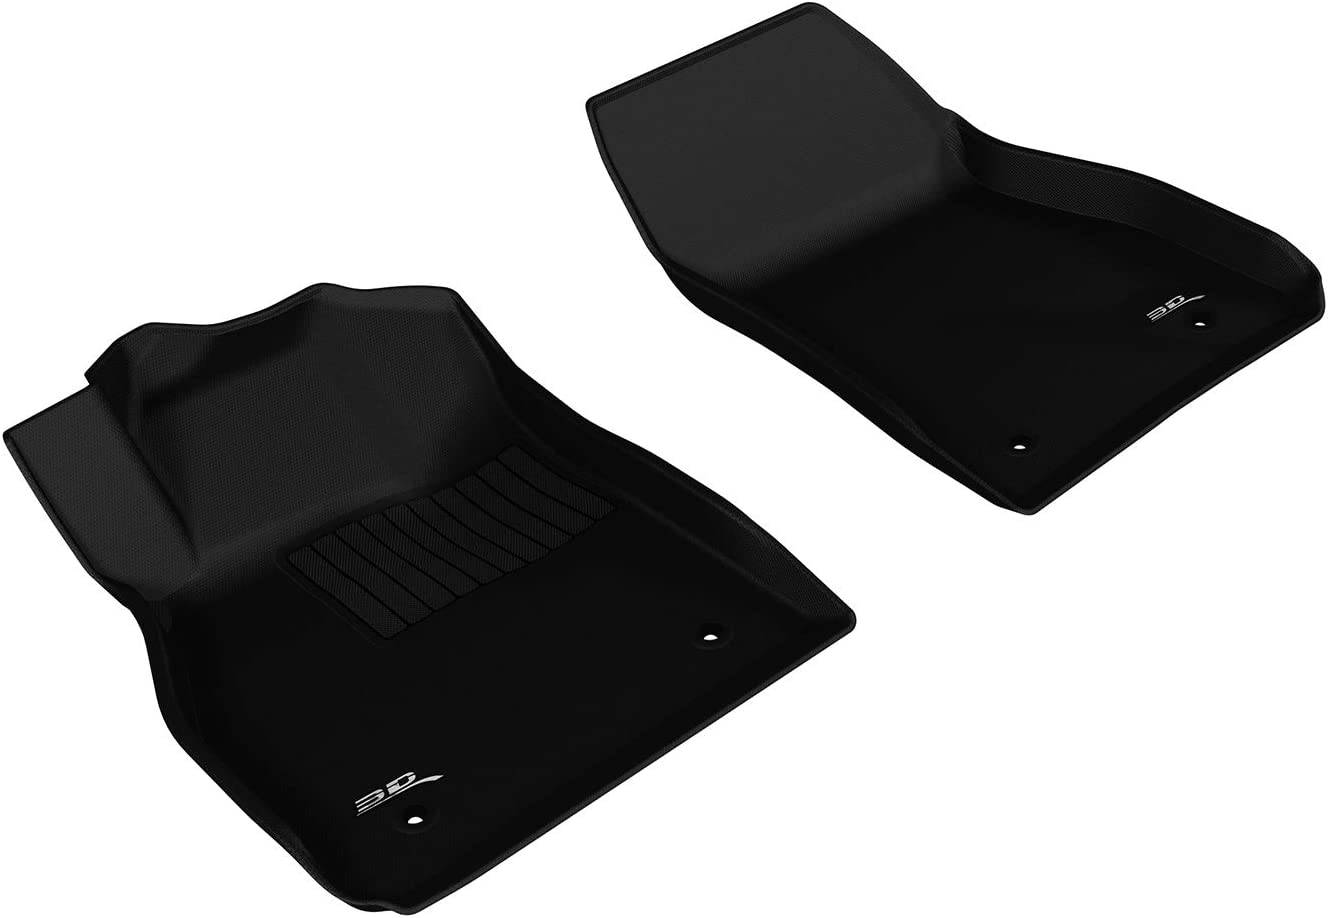 3D MAXpider Front Row Custom Fit All-Weather Floor Mat for Select Chevrolet Malibu Models L1CH06311509 Black Kagu Rubber